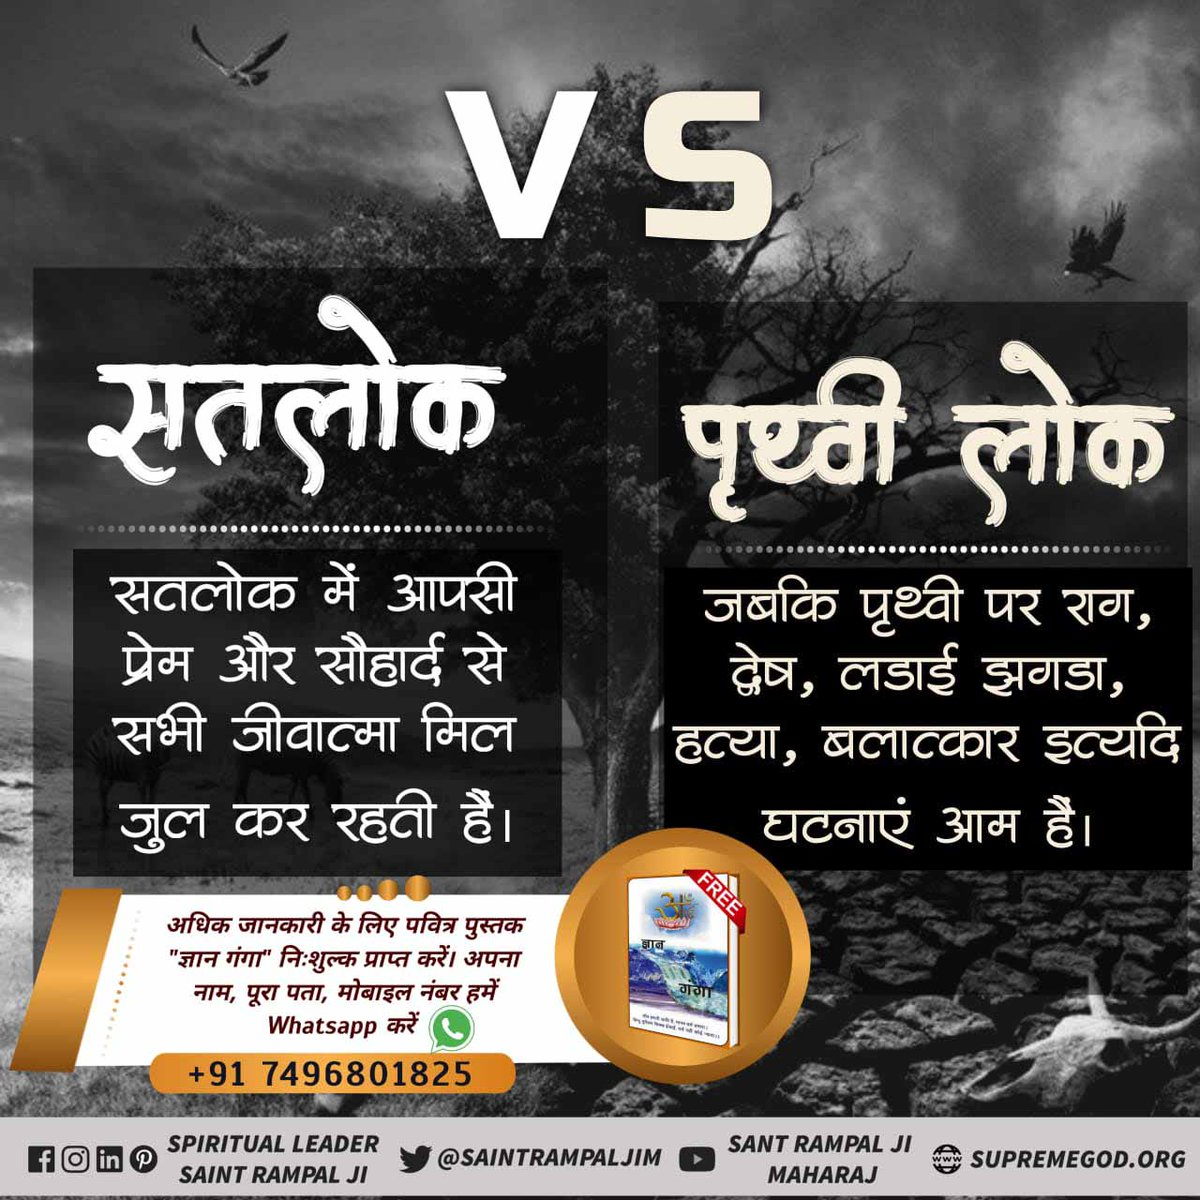 Every creature on earth is sad.  Satlok is the ocean of happiness.  There is no such thing as sorrow.  Birth is not death.  Not old age.  Read the way of living the book as evidenced by all scriptures  #अमरलोक_VS_मृत्युलोक